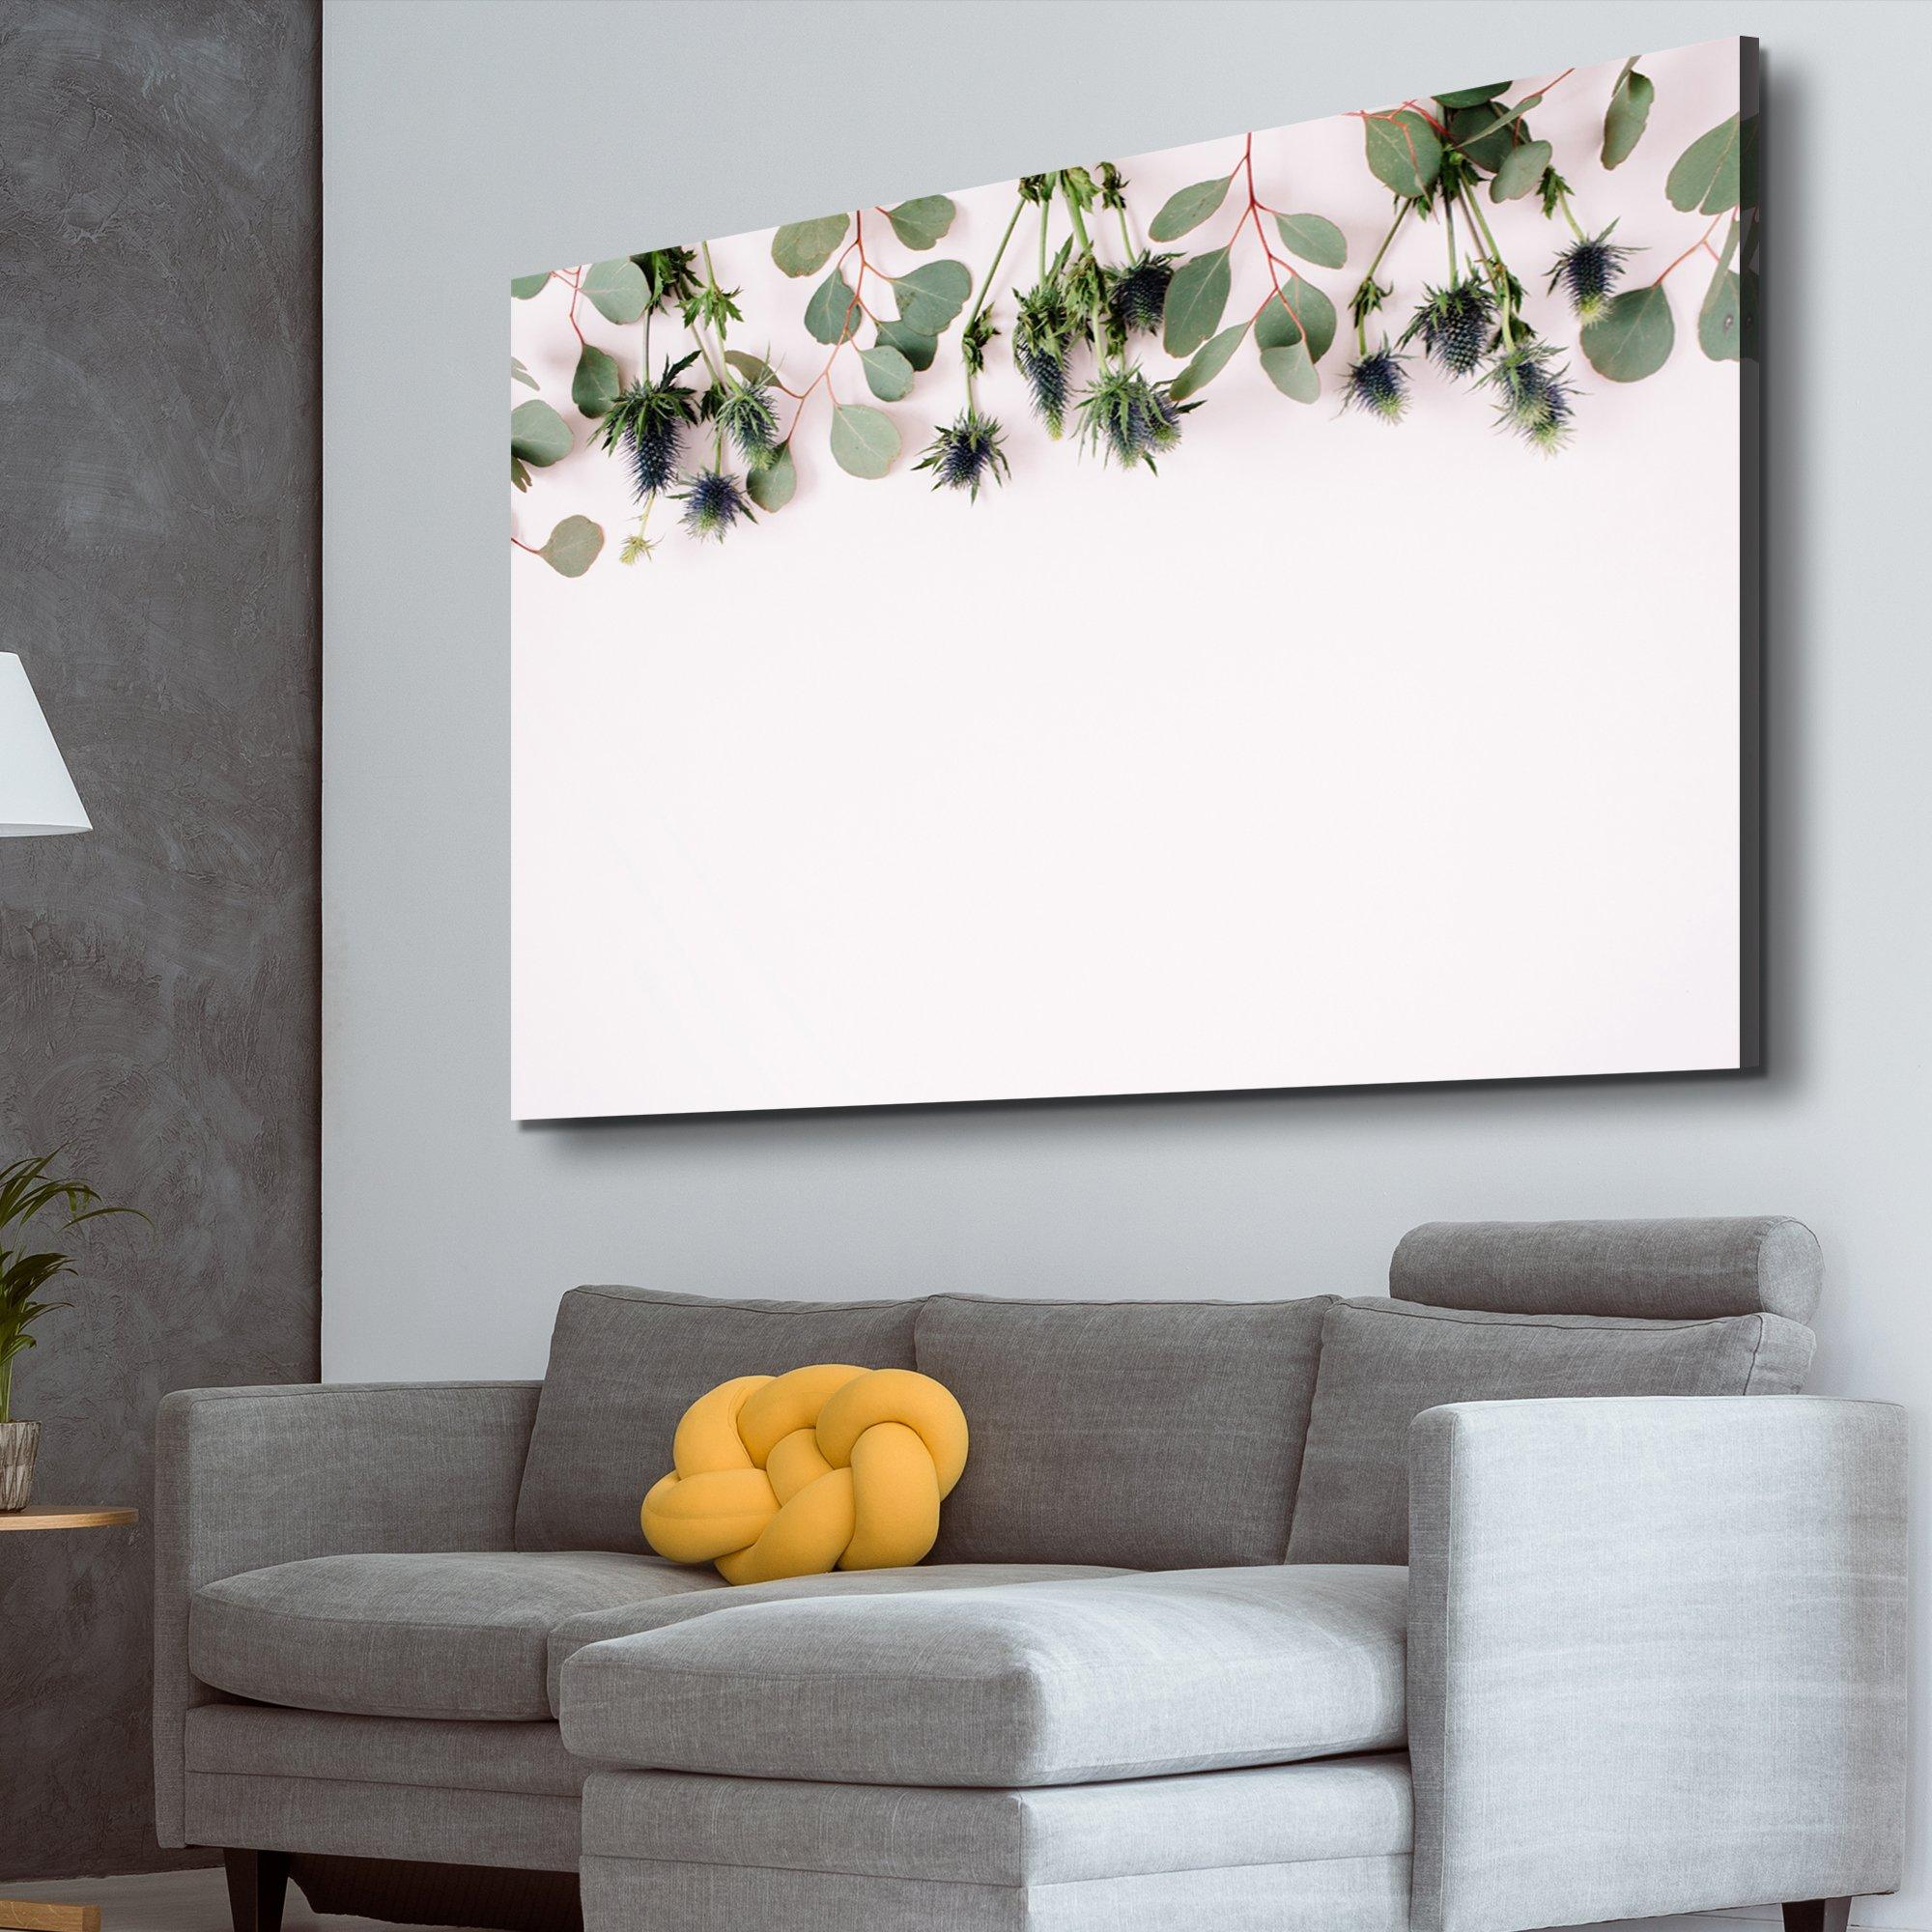 Eucalyptus living room wall art